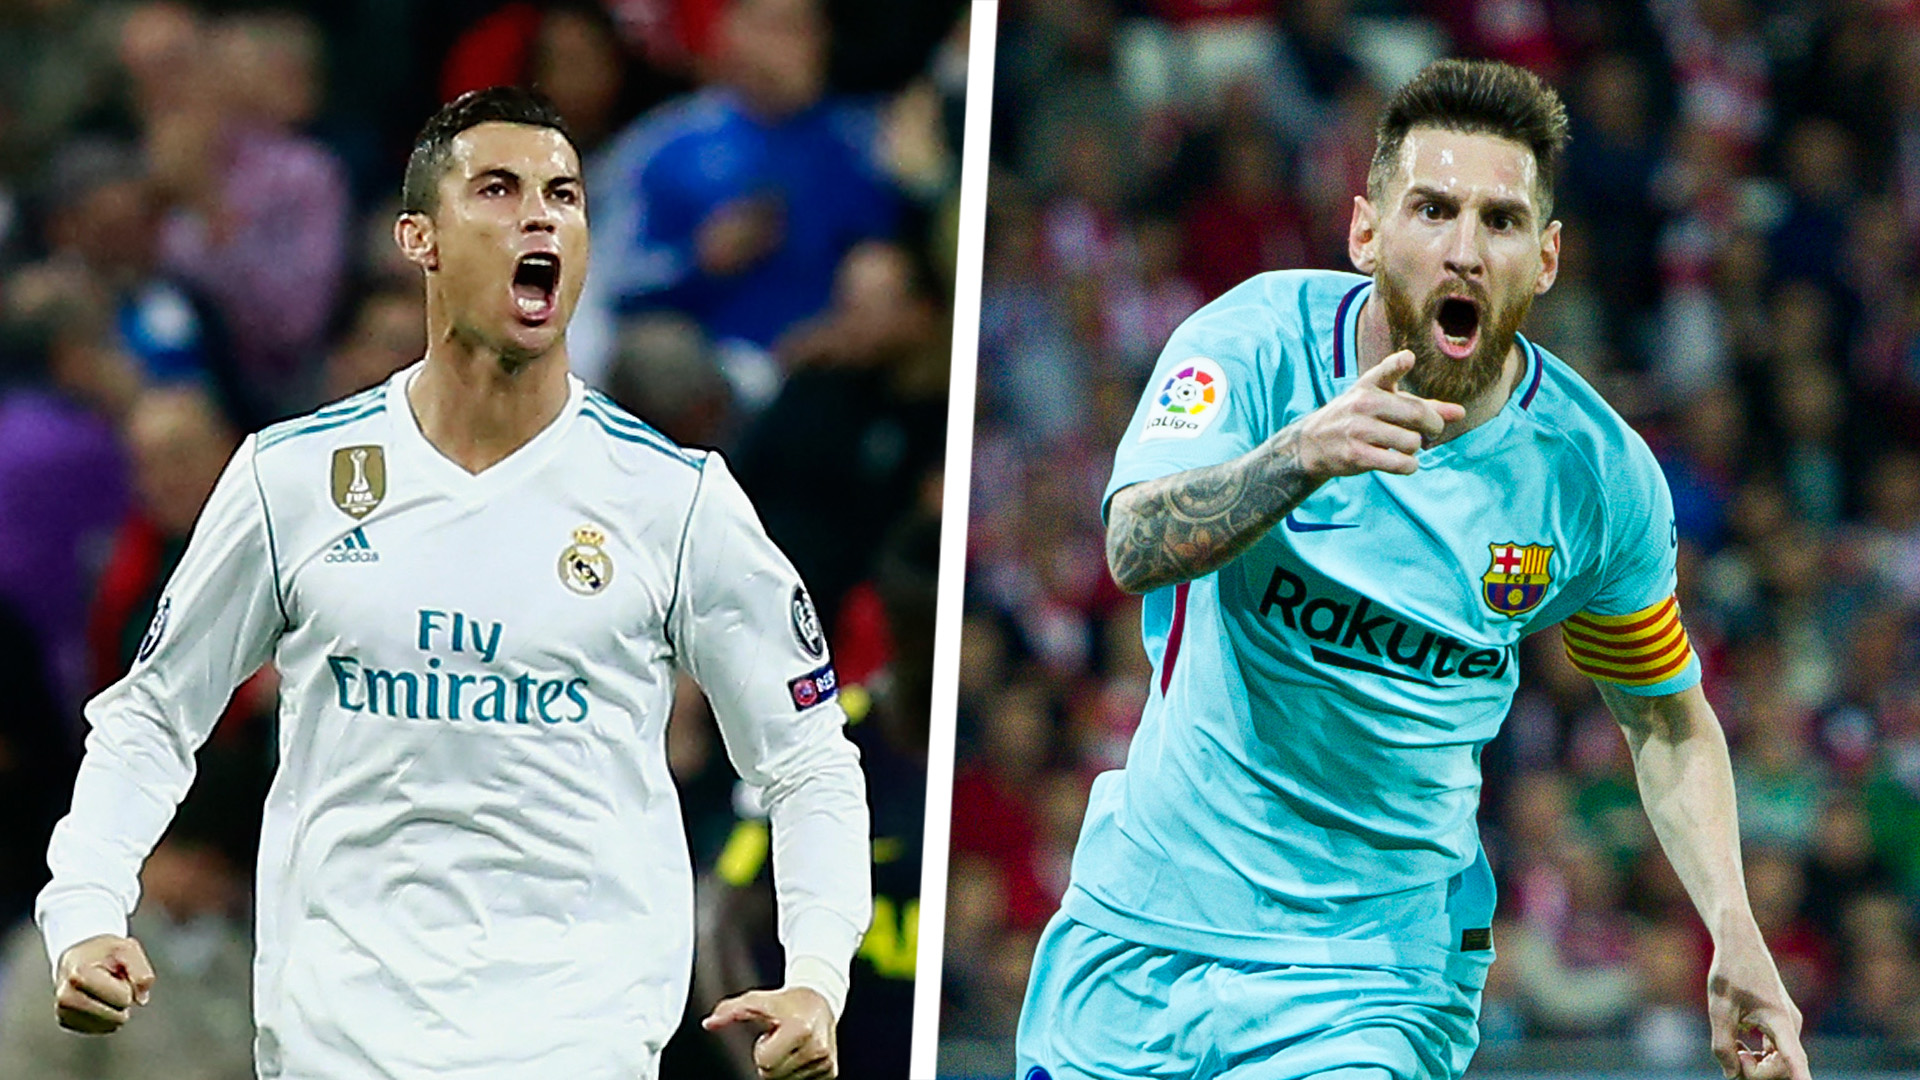 El Clasico top scorers: Messi, Ronaldo and the all-time greats